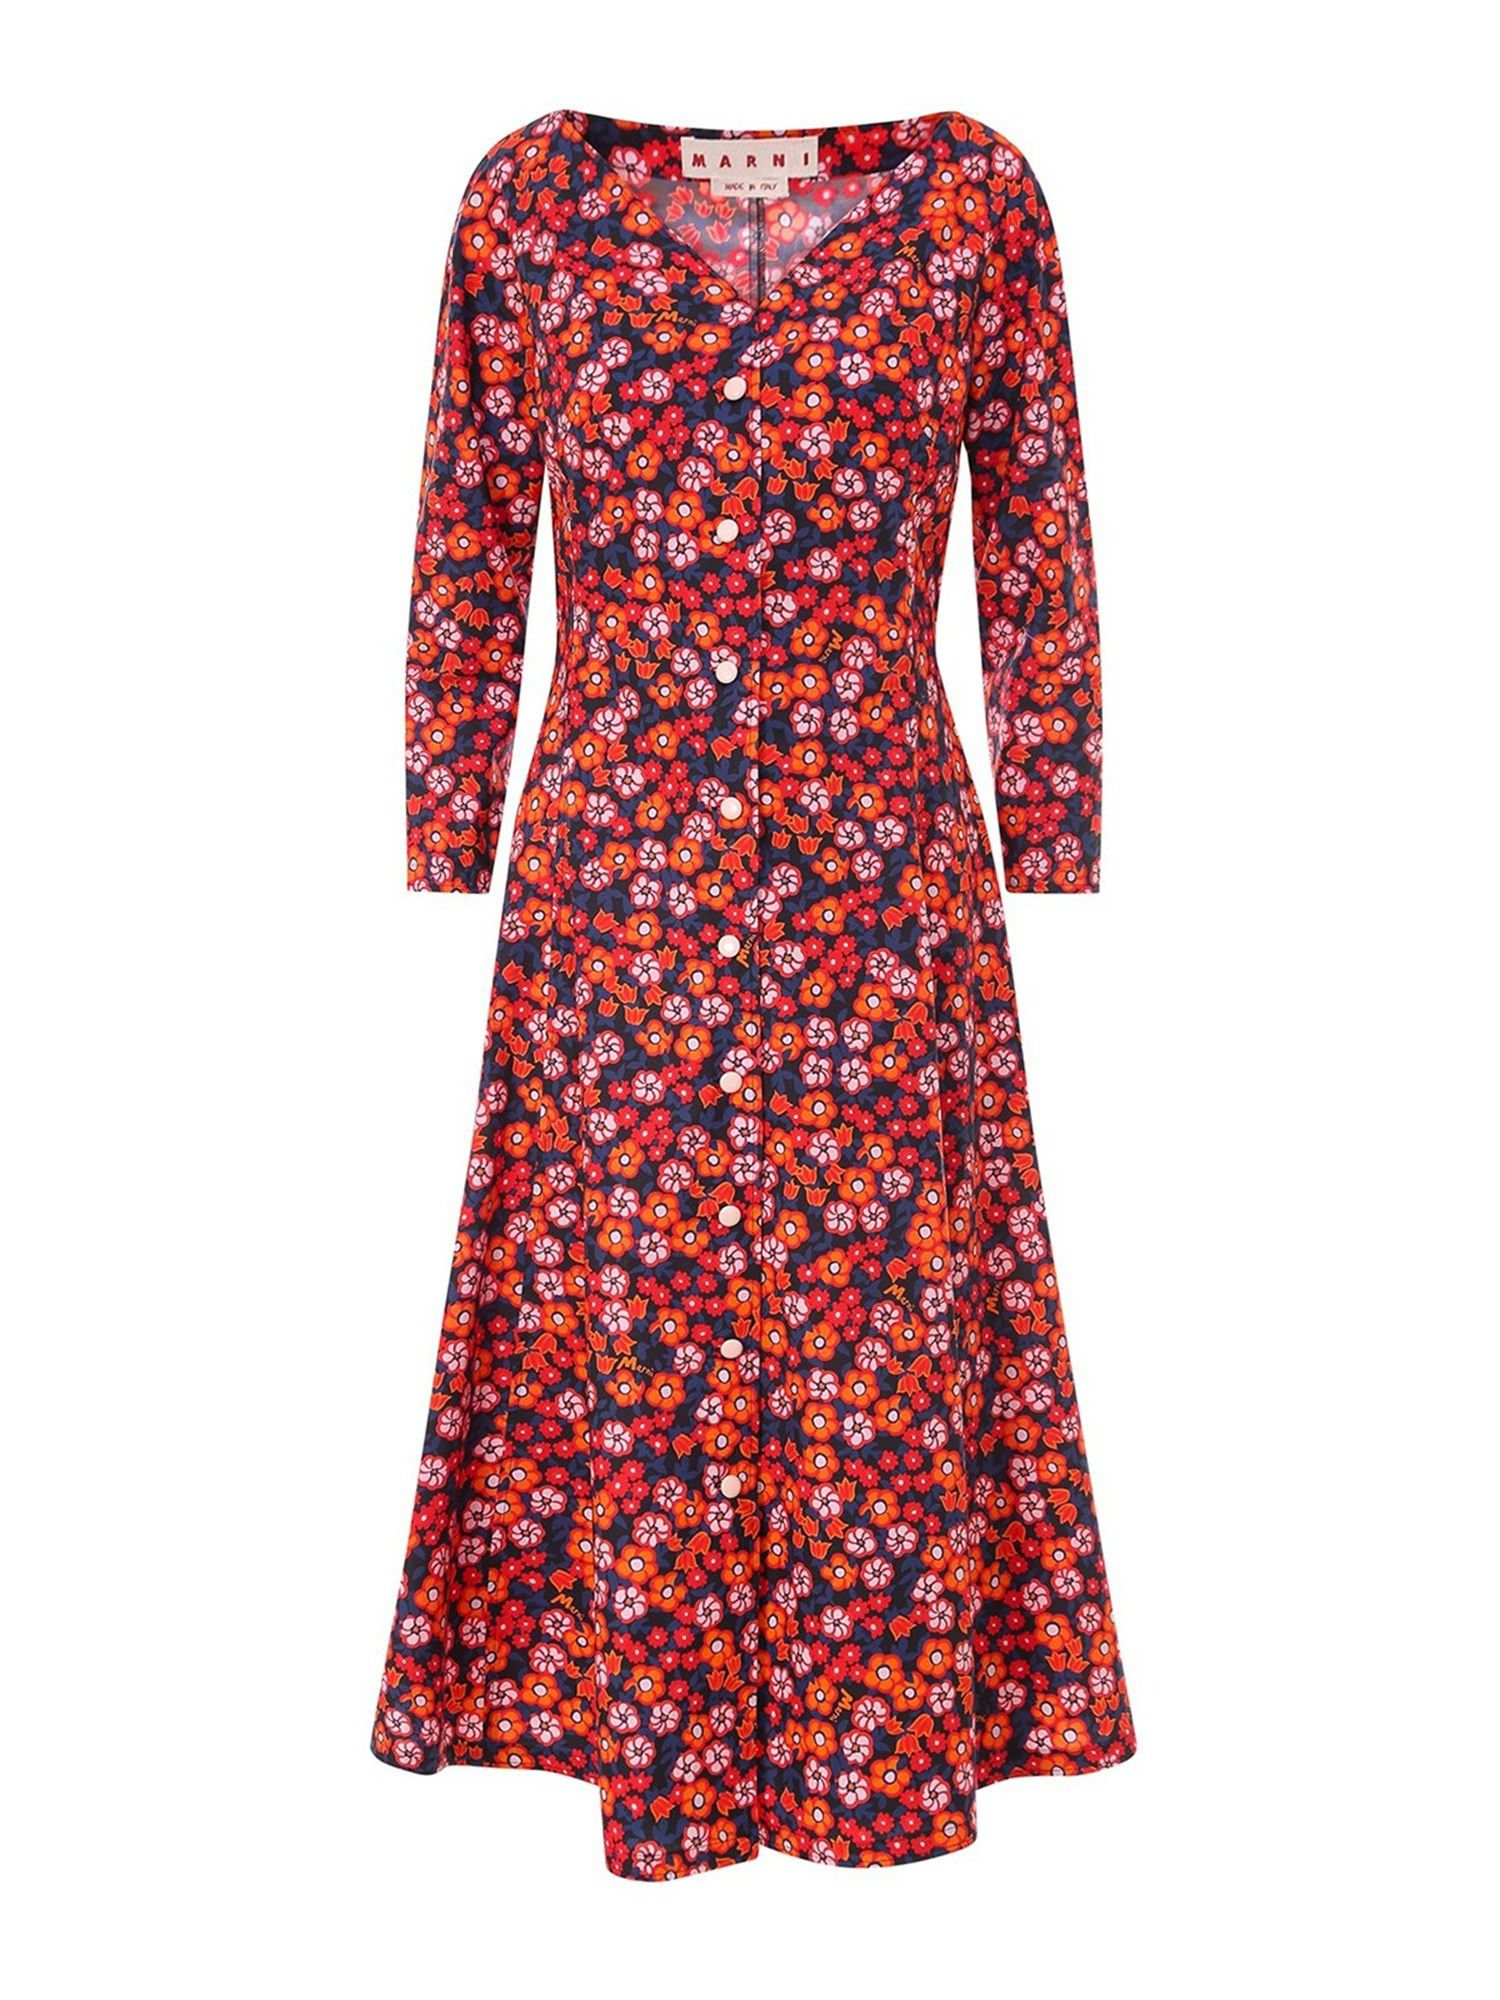 Marni COTTON FLORAL DRESS IN BLACK